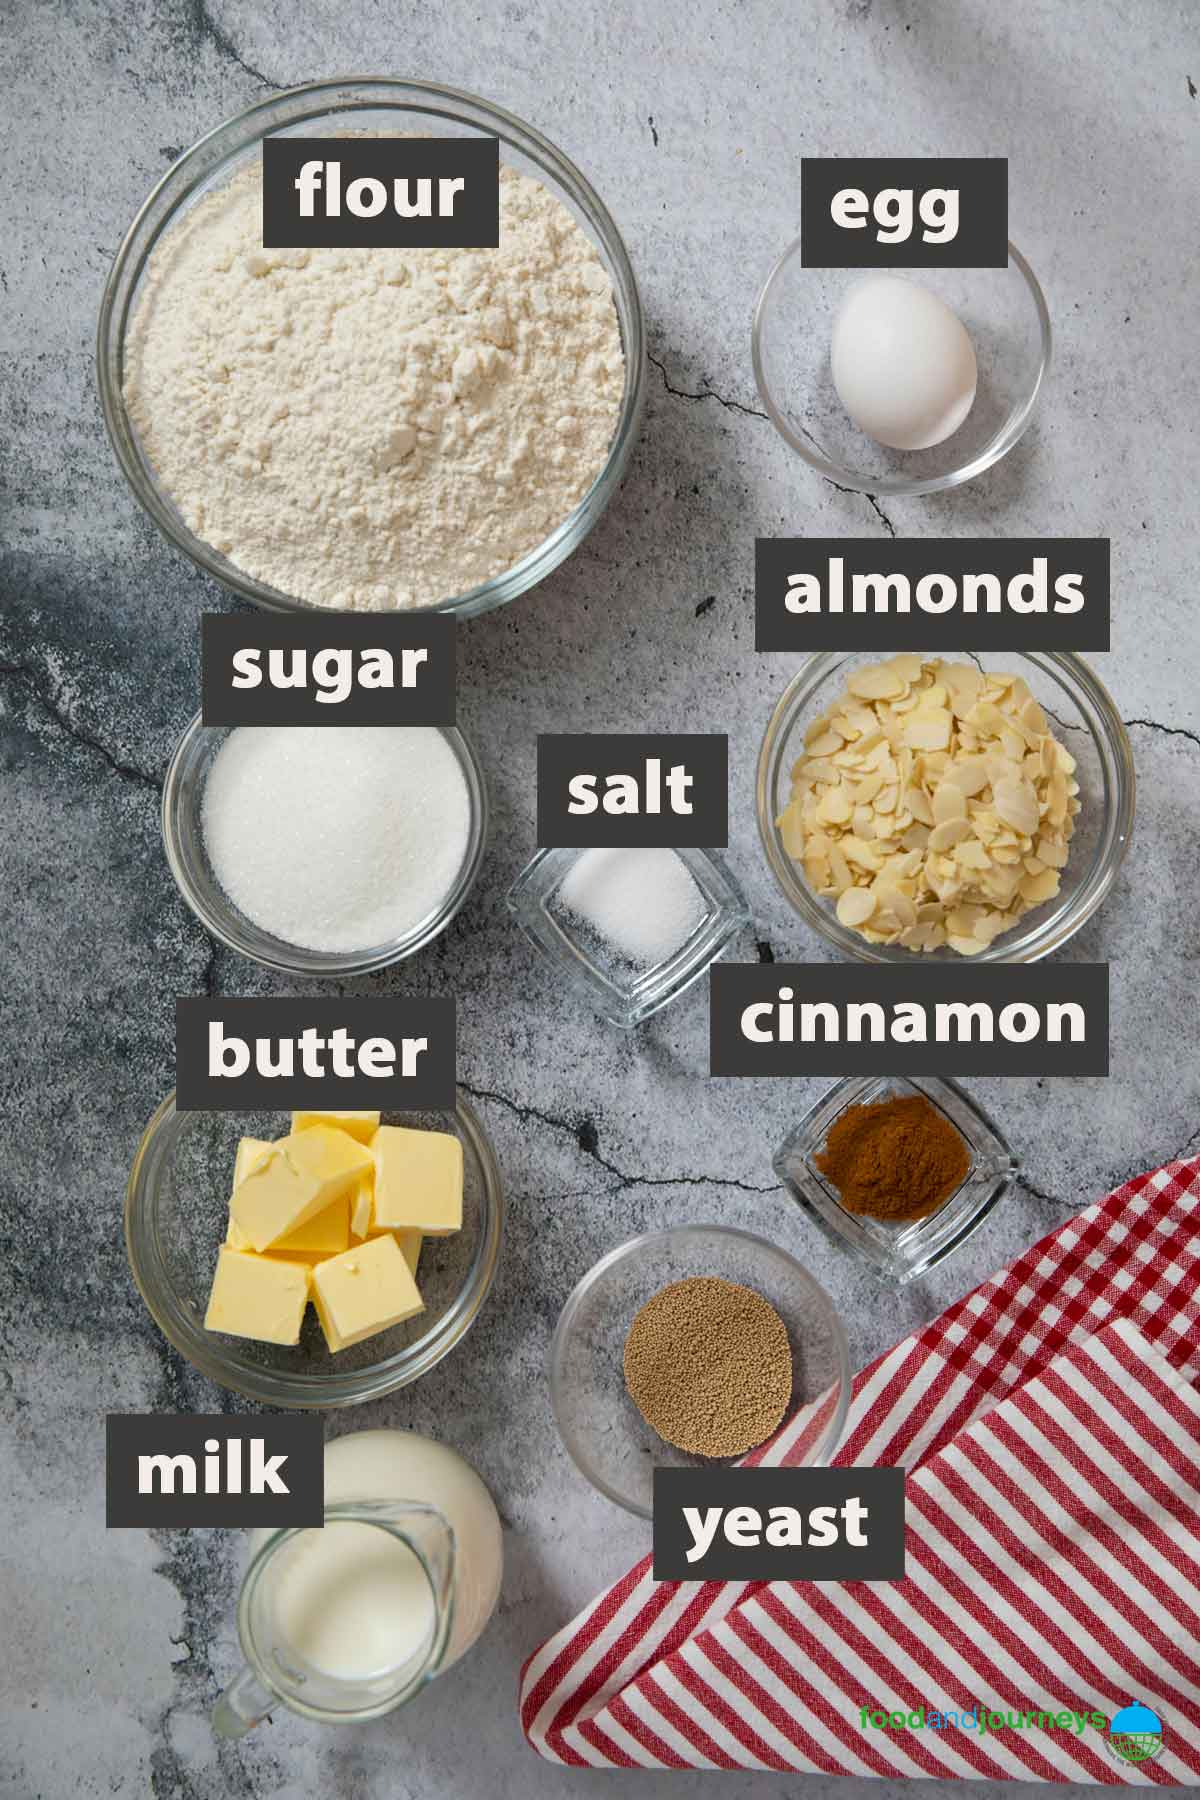 Latest - Jul2021, an image showing all the ingredients you need to prepare butterkuchen at home.